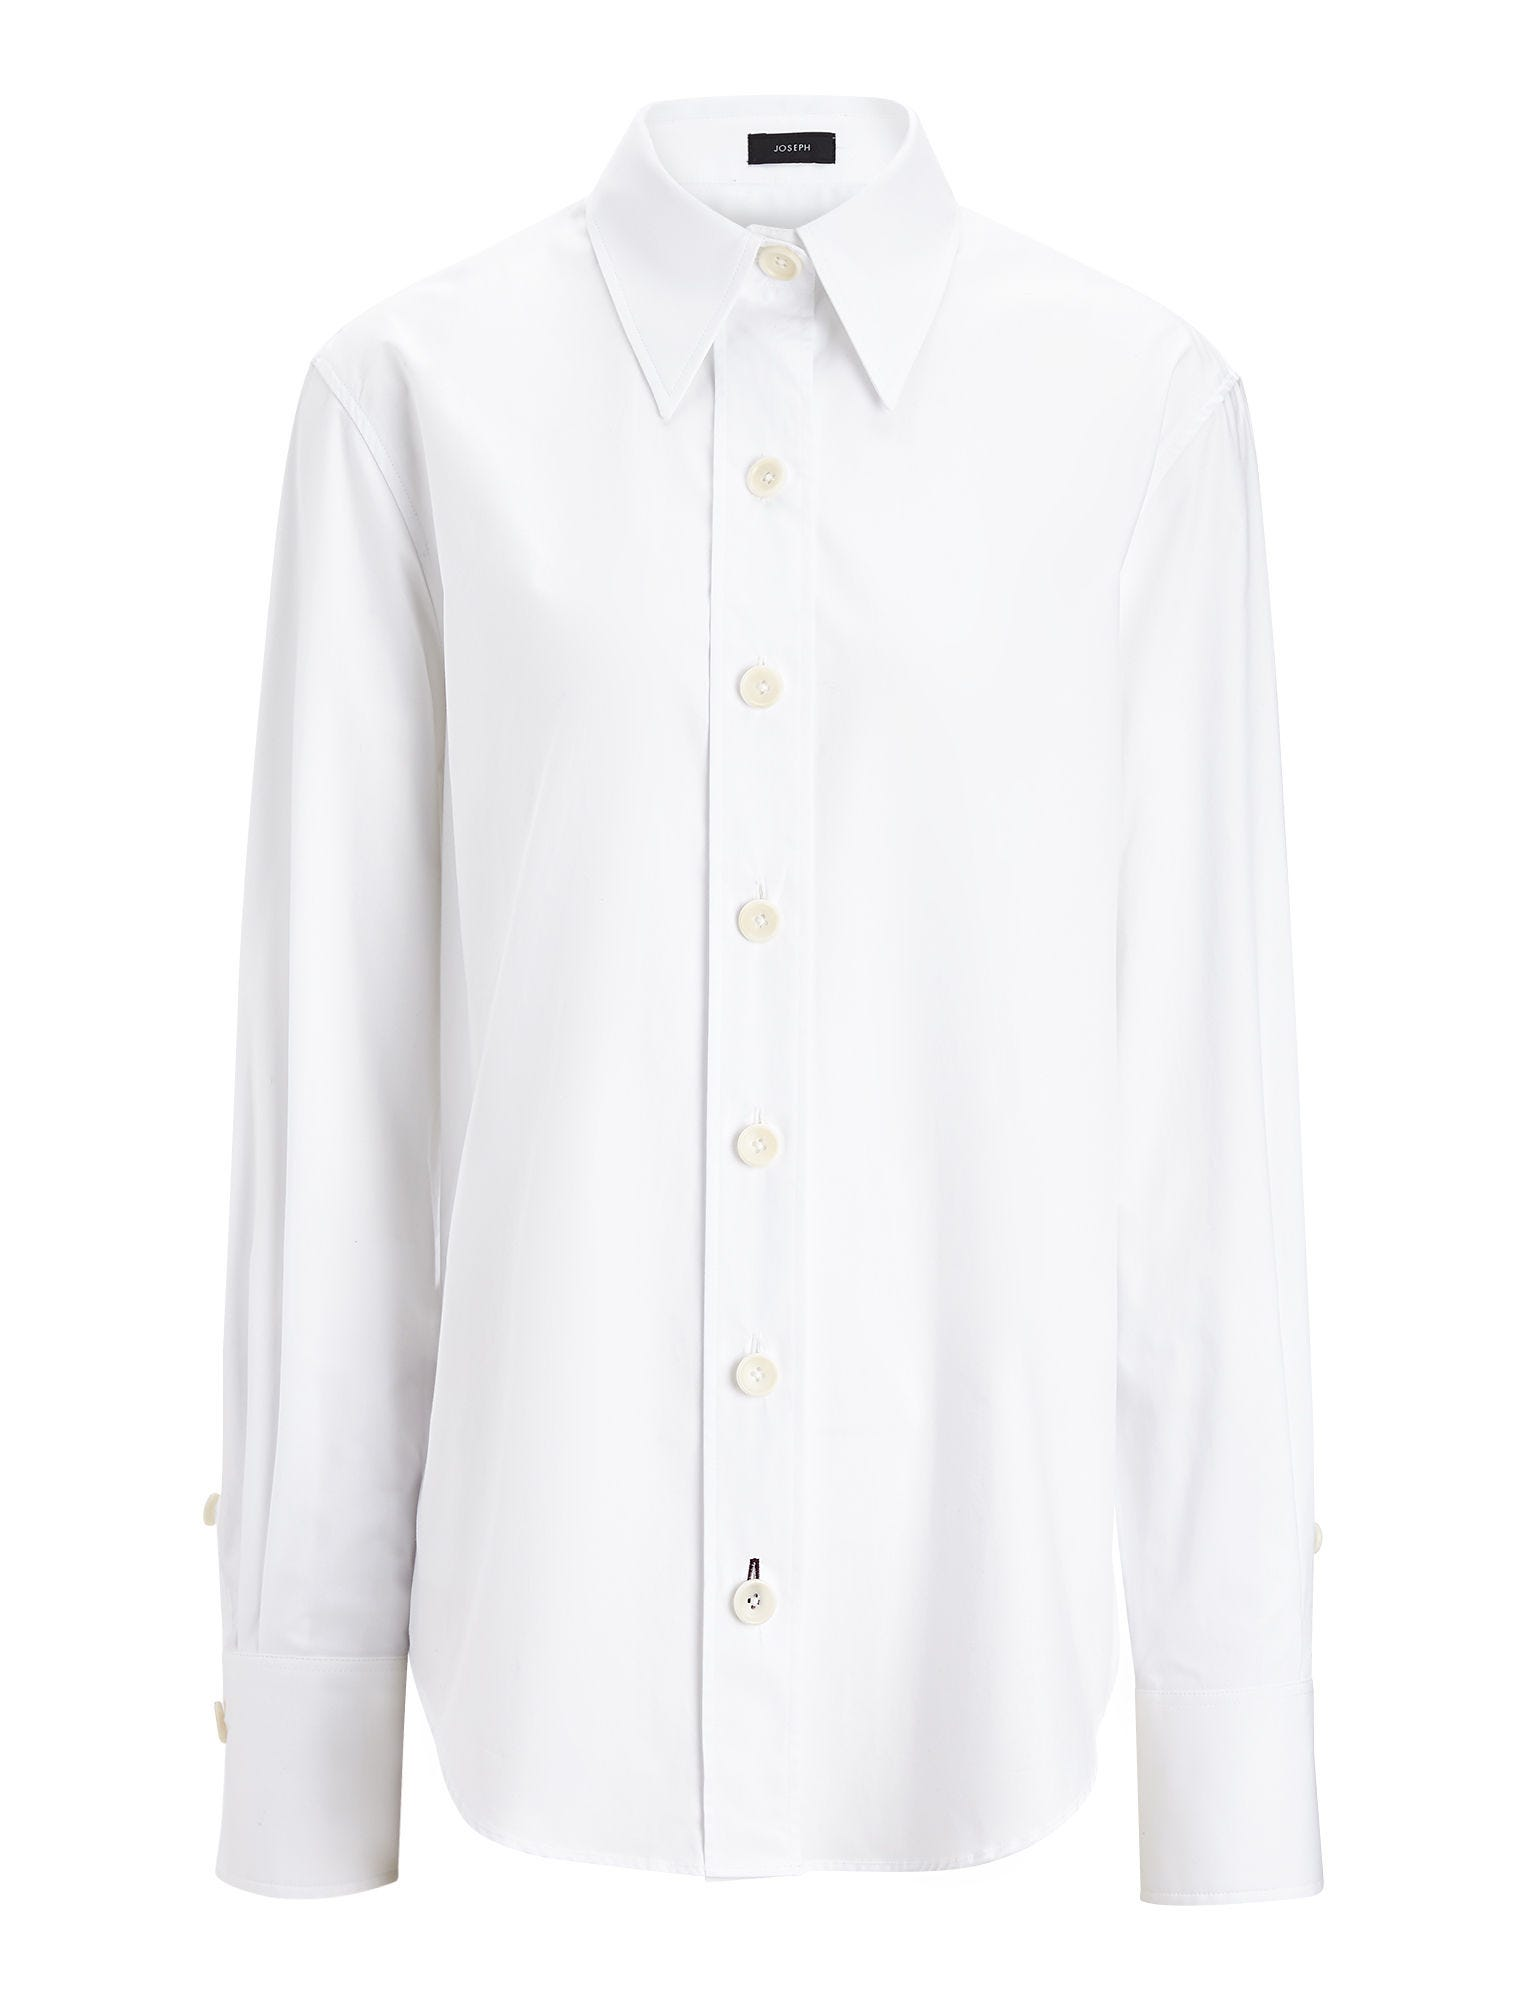 fff8636d Best Women's Shirts For Work - Button Up Tops